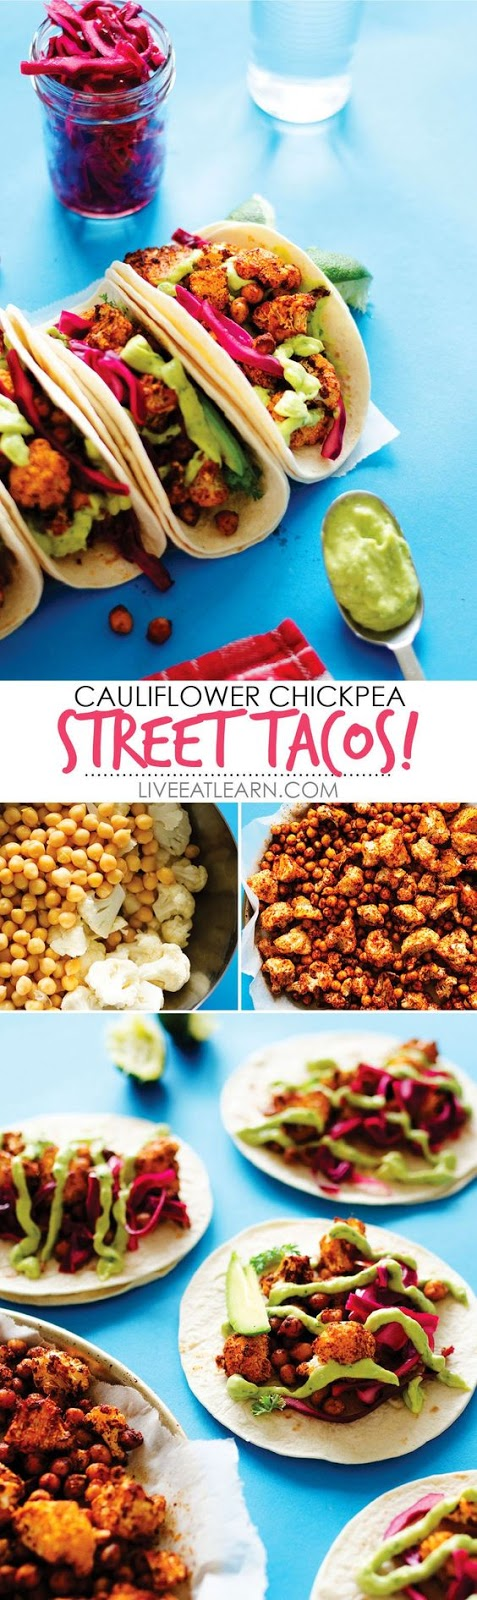 Roasted Cauliflower Street Tacos